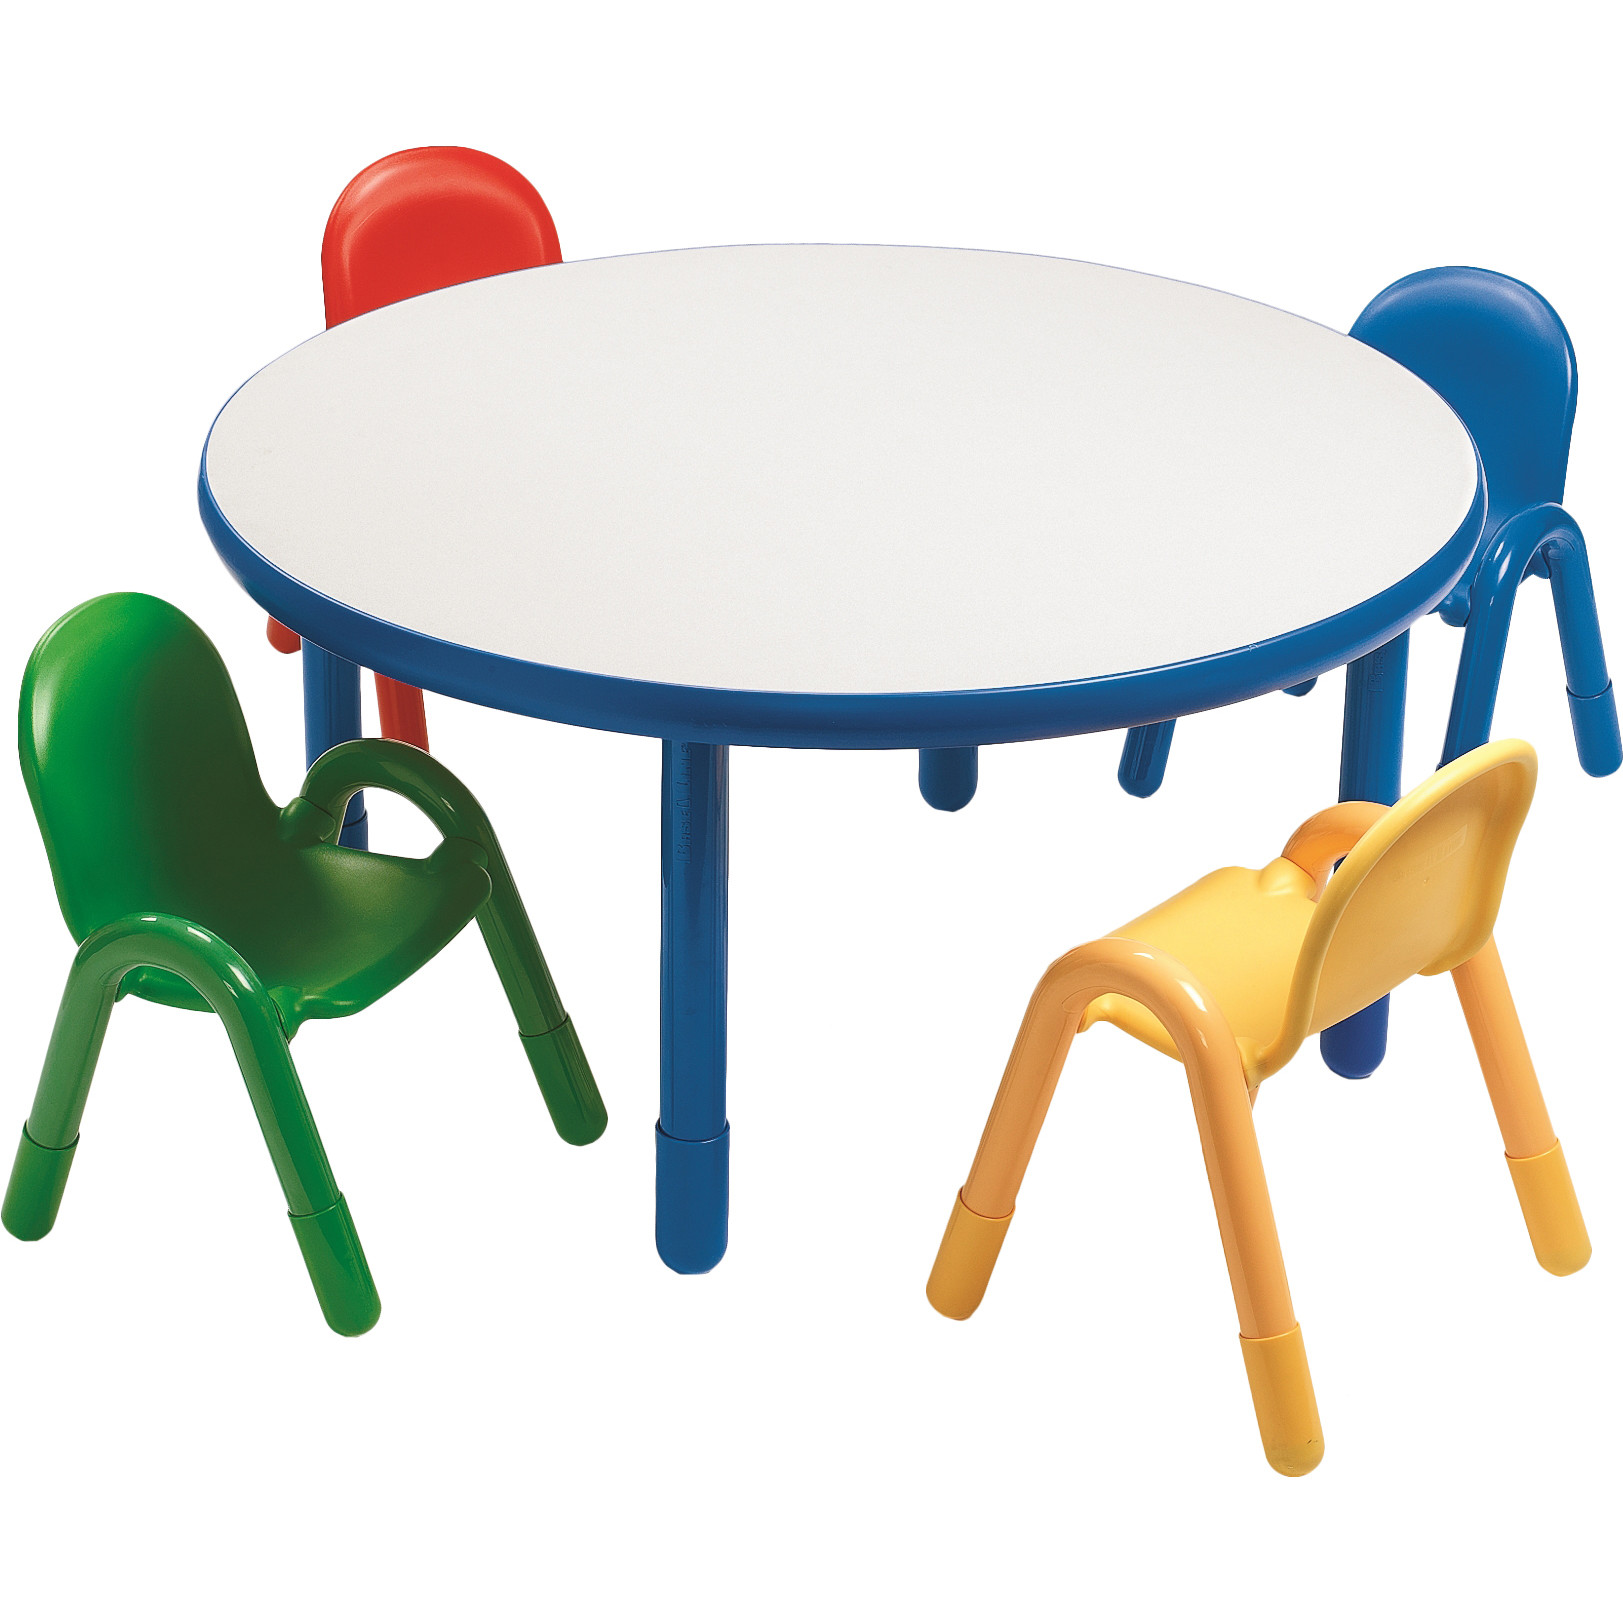 1623x1623 Set The Table Clipart